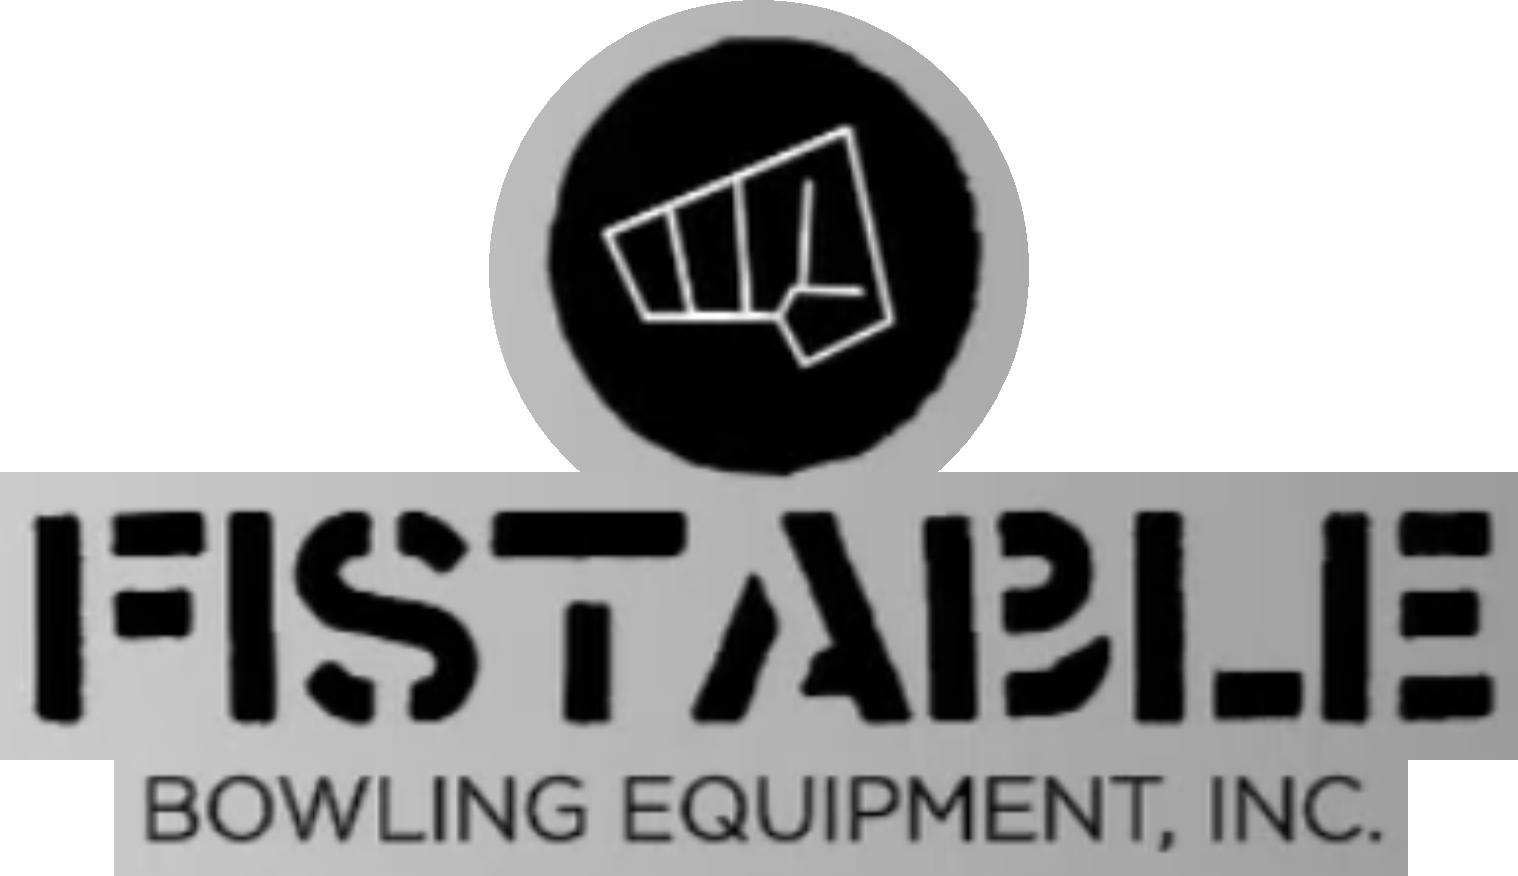 Fistable Bowling Equipment, Inc.